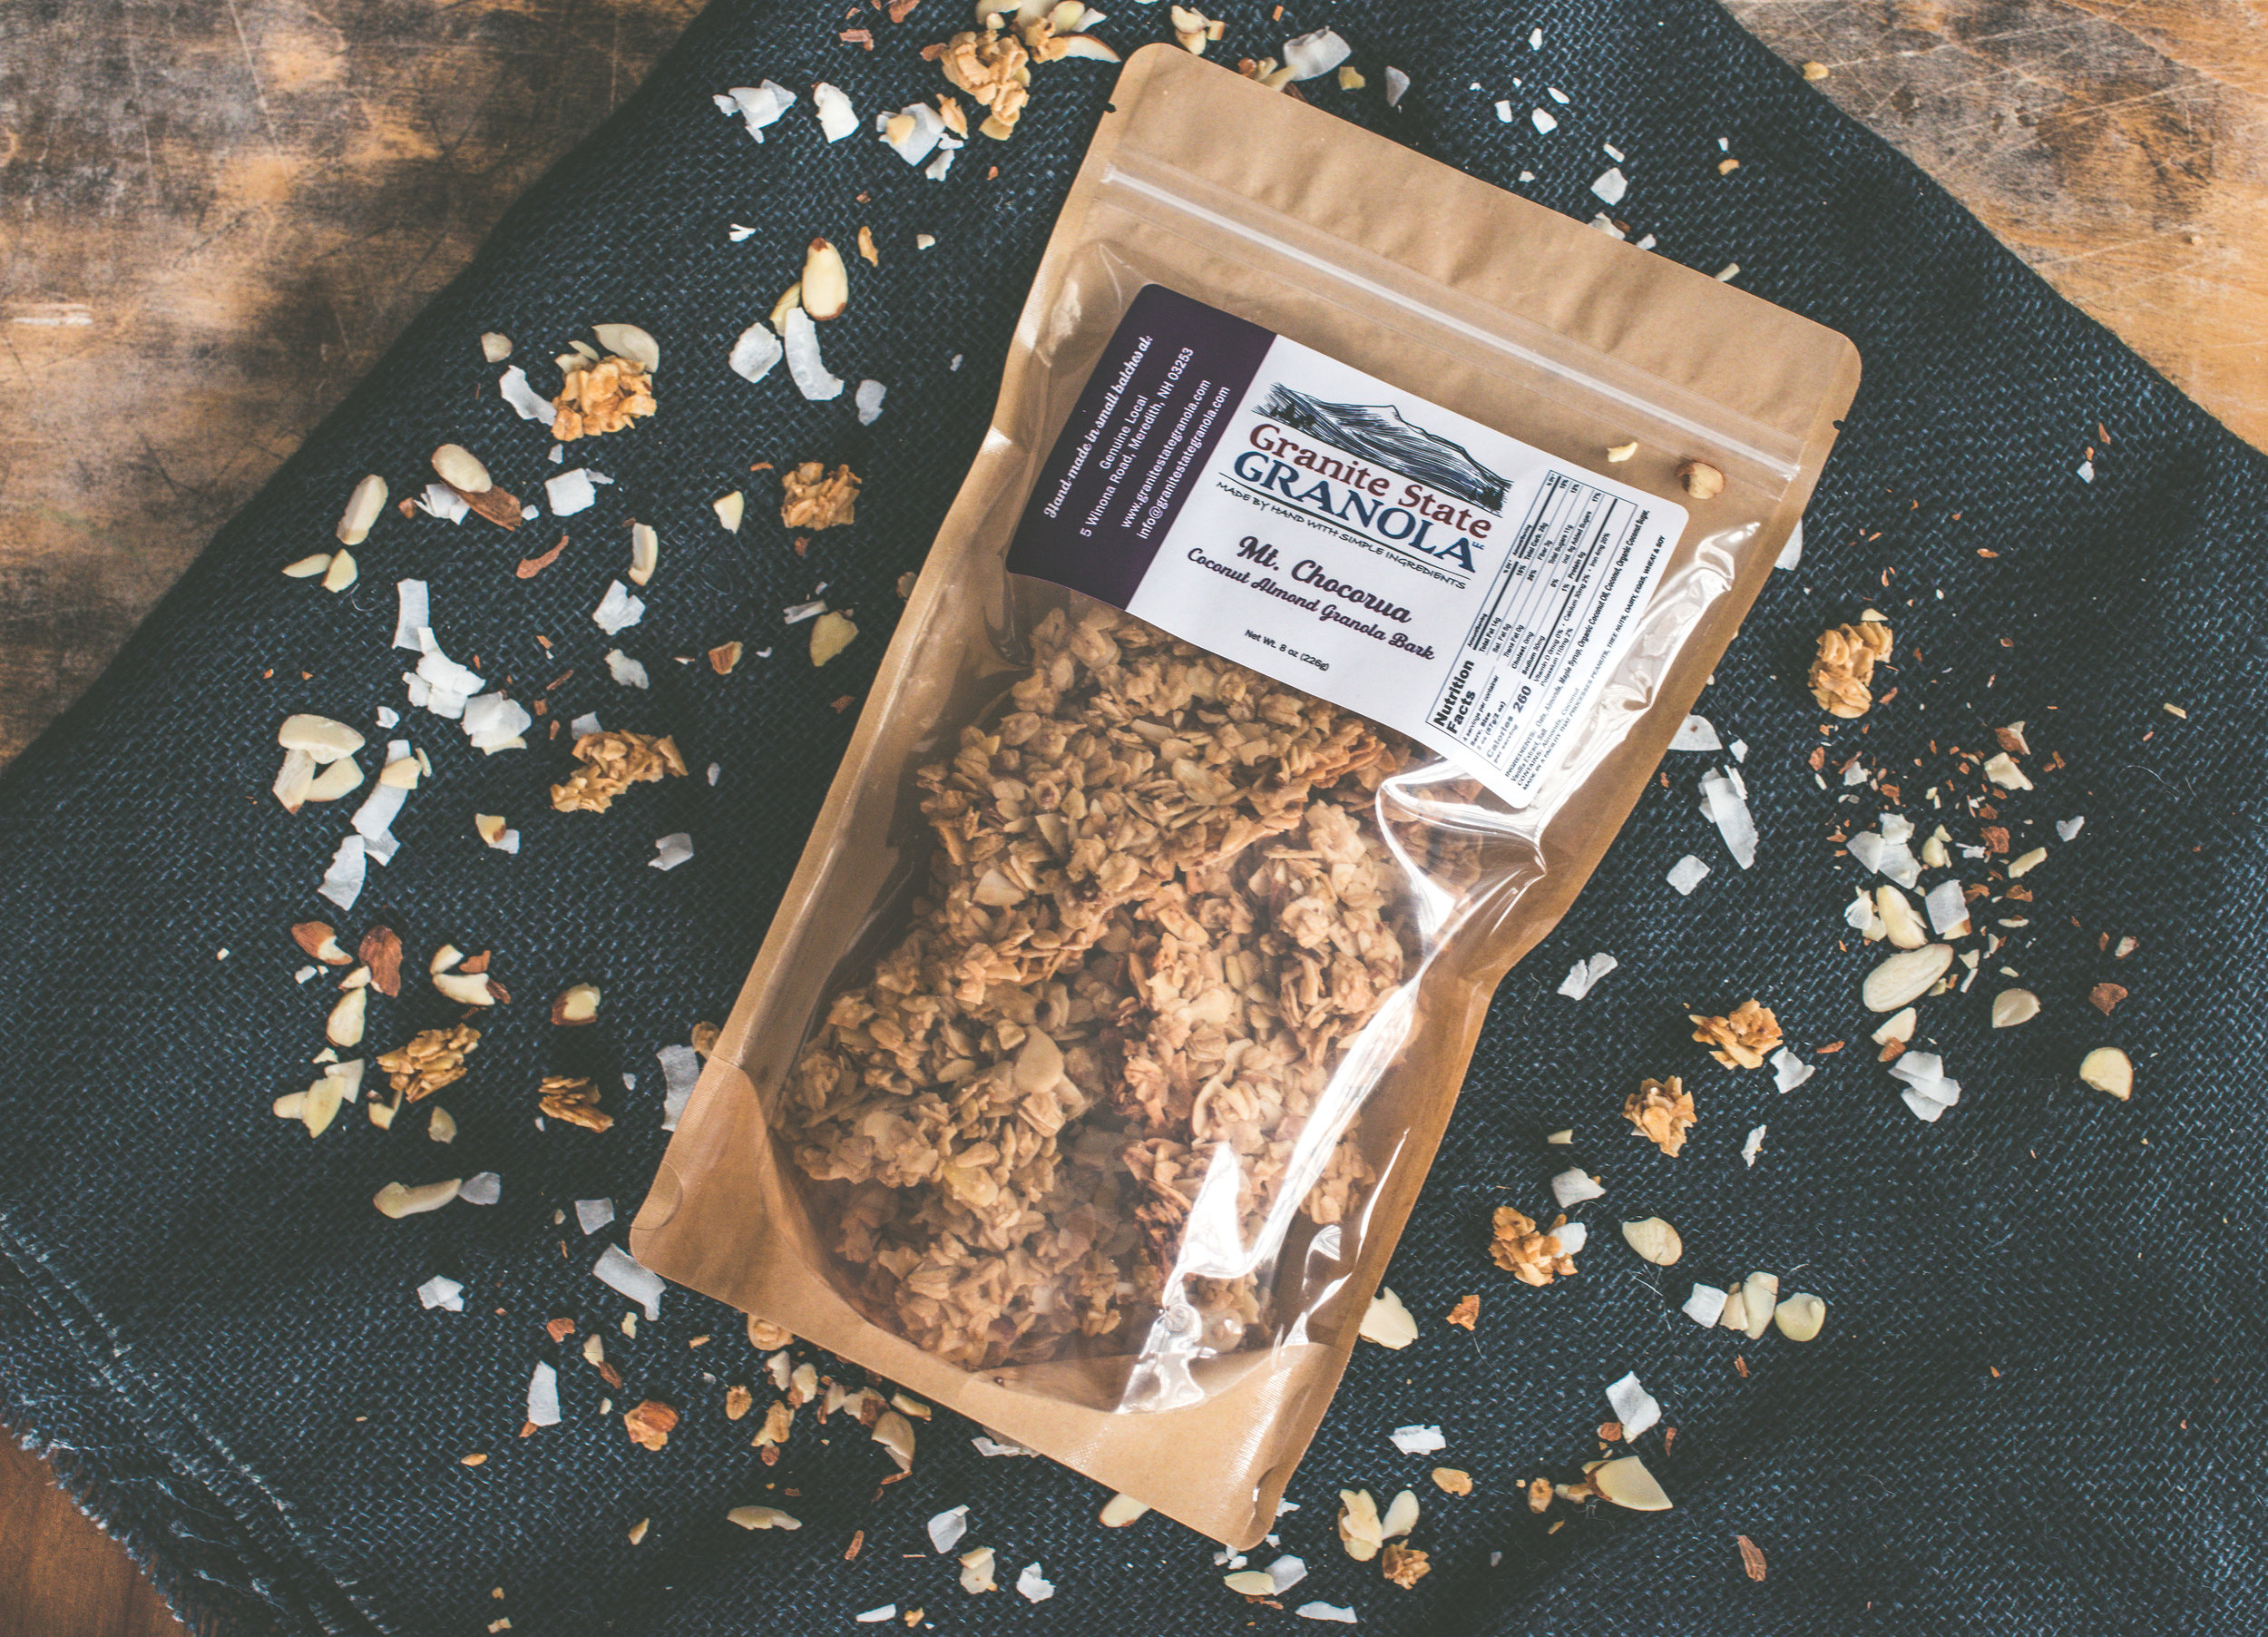 Mt. Chocorua, Coconut Almond Granola Bark  Photo Credits: Jessica Ramos, Culture to Table